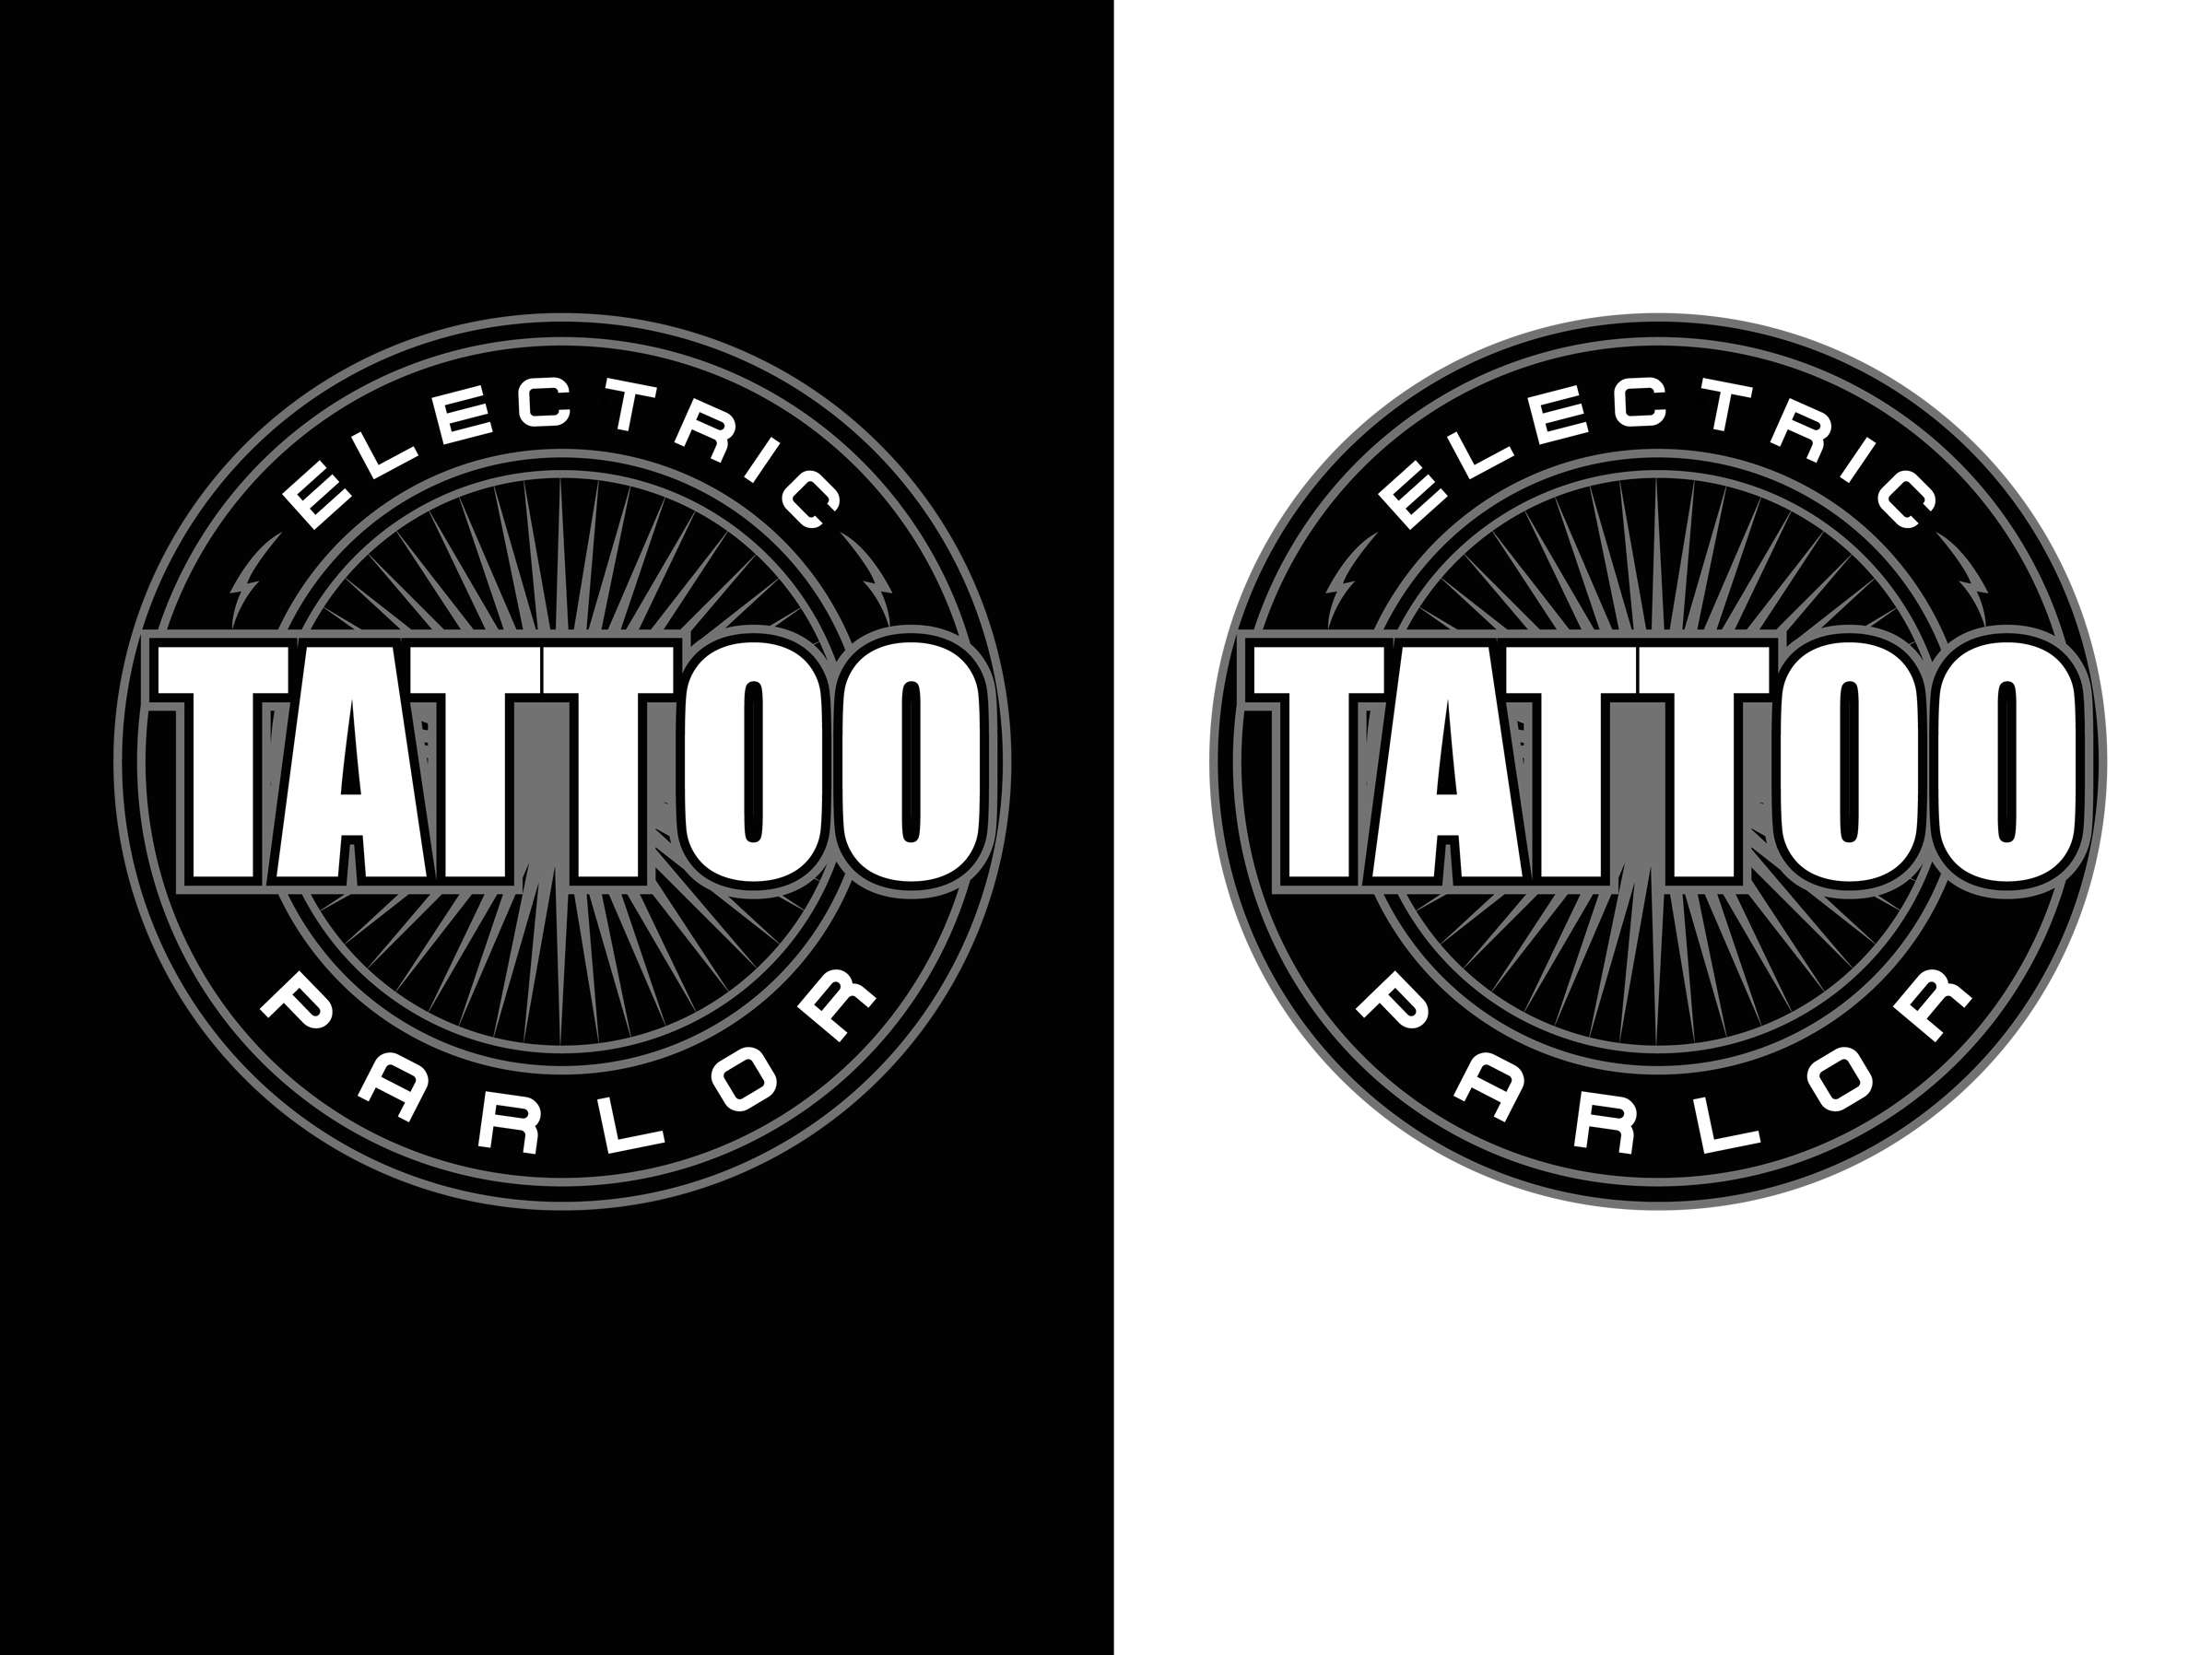 Logo Design 45 'Electric Tattoo Parlor' design project